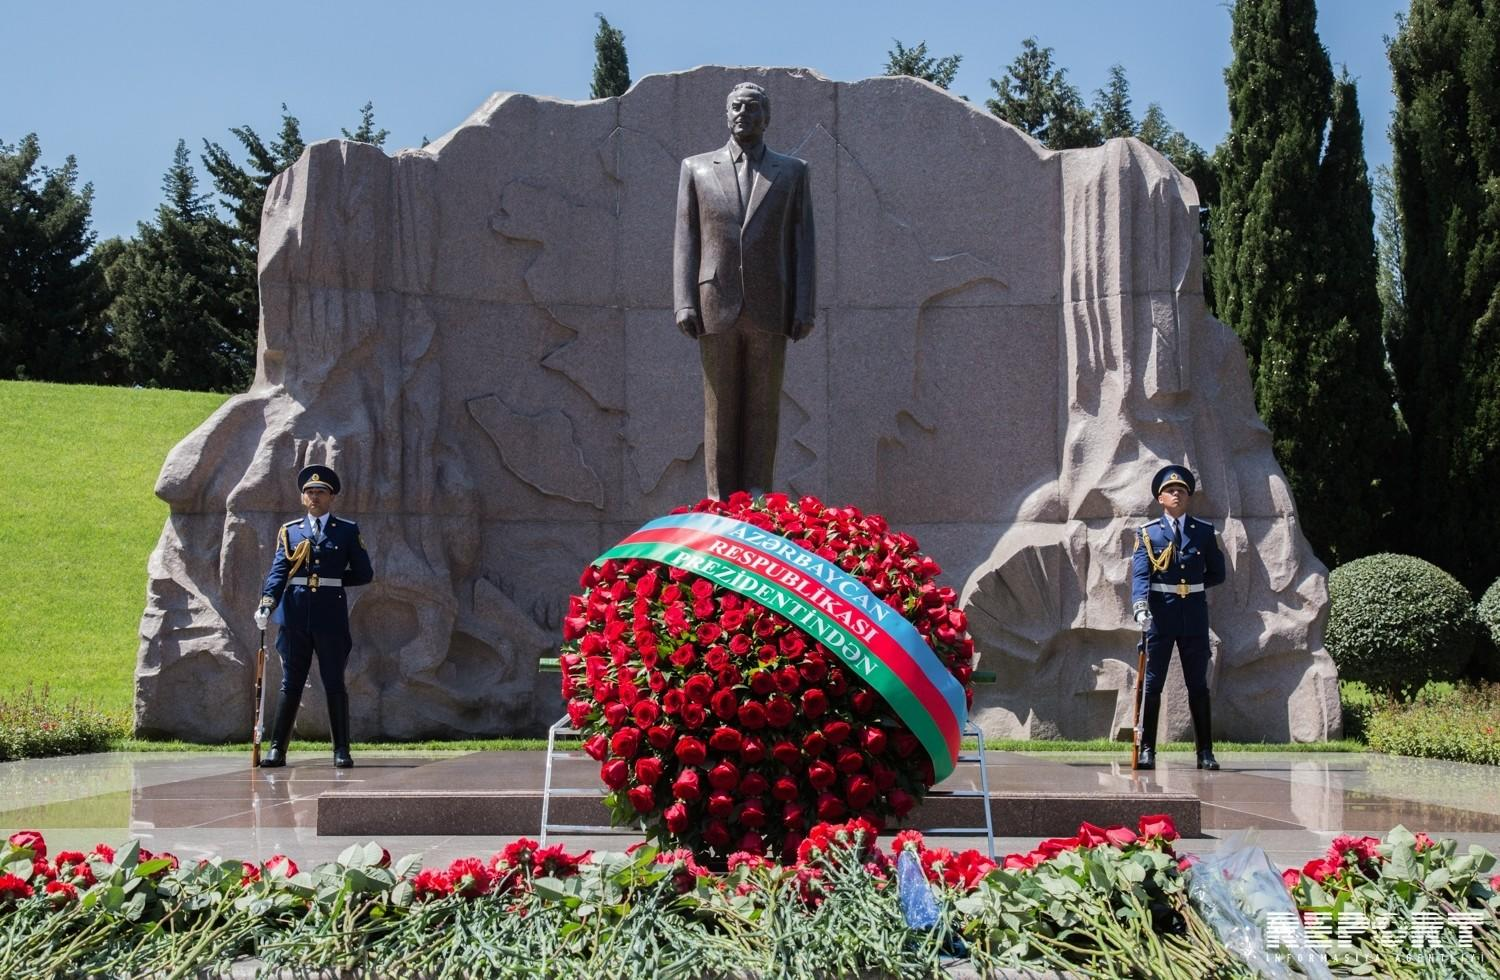 Azerbaijan commemorates 15th anniversary of death of nationwide leader